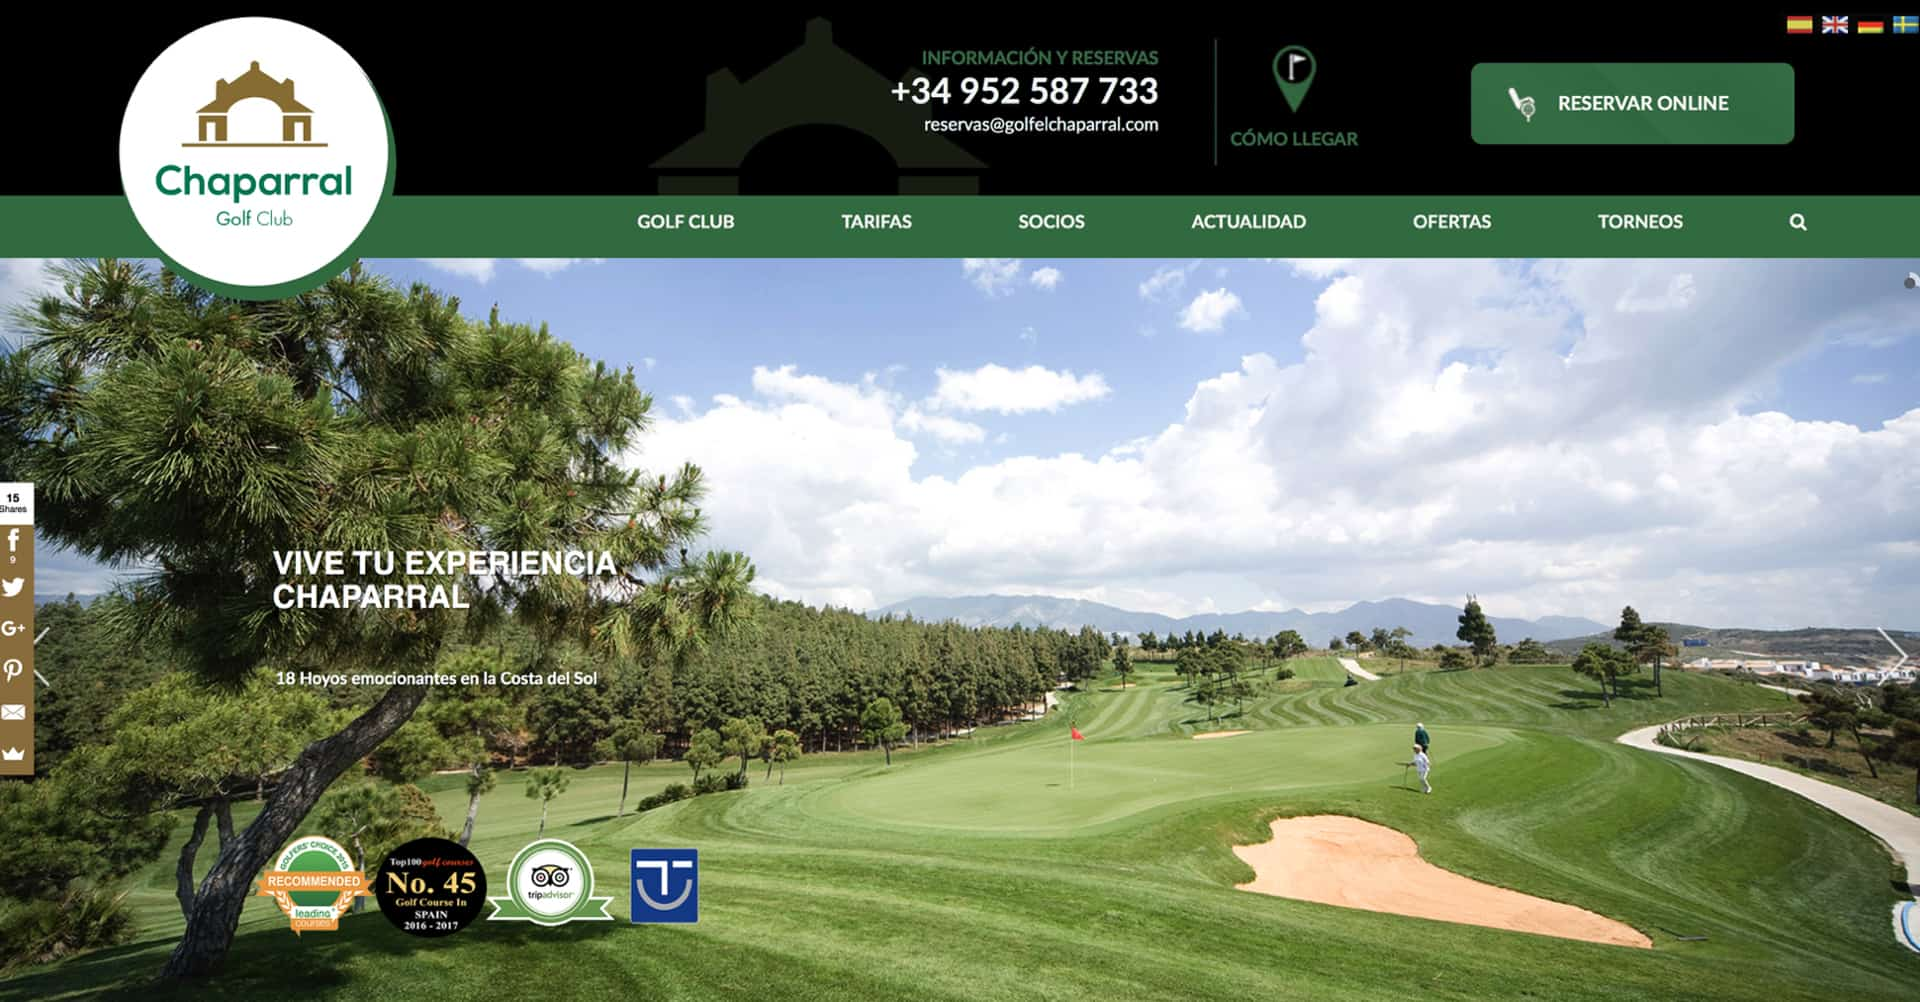 Chaparral Golf Club | Web